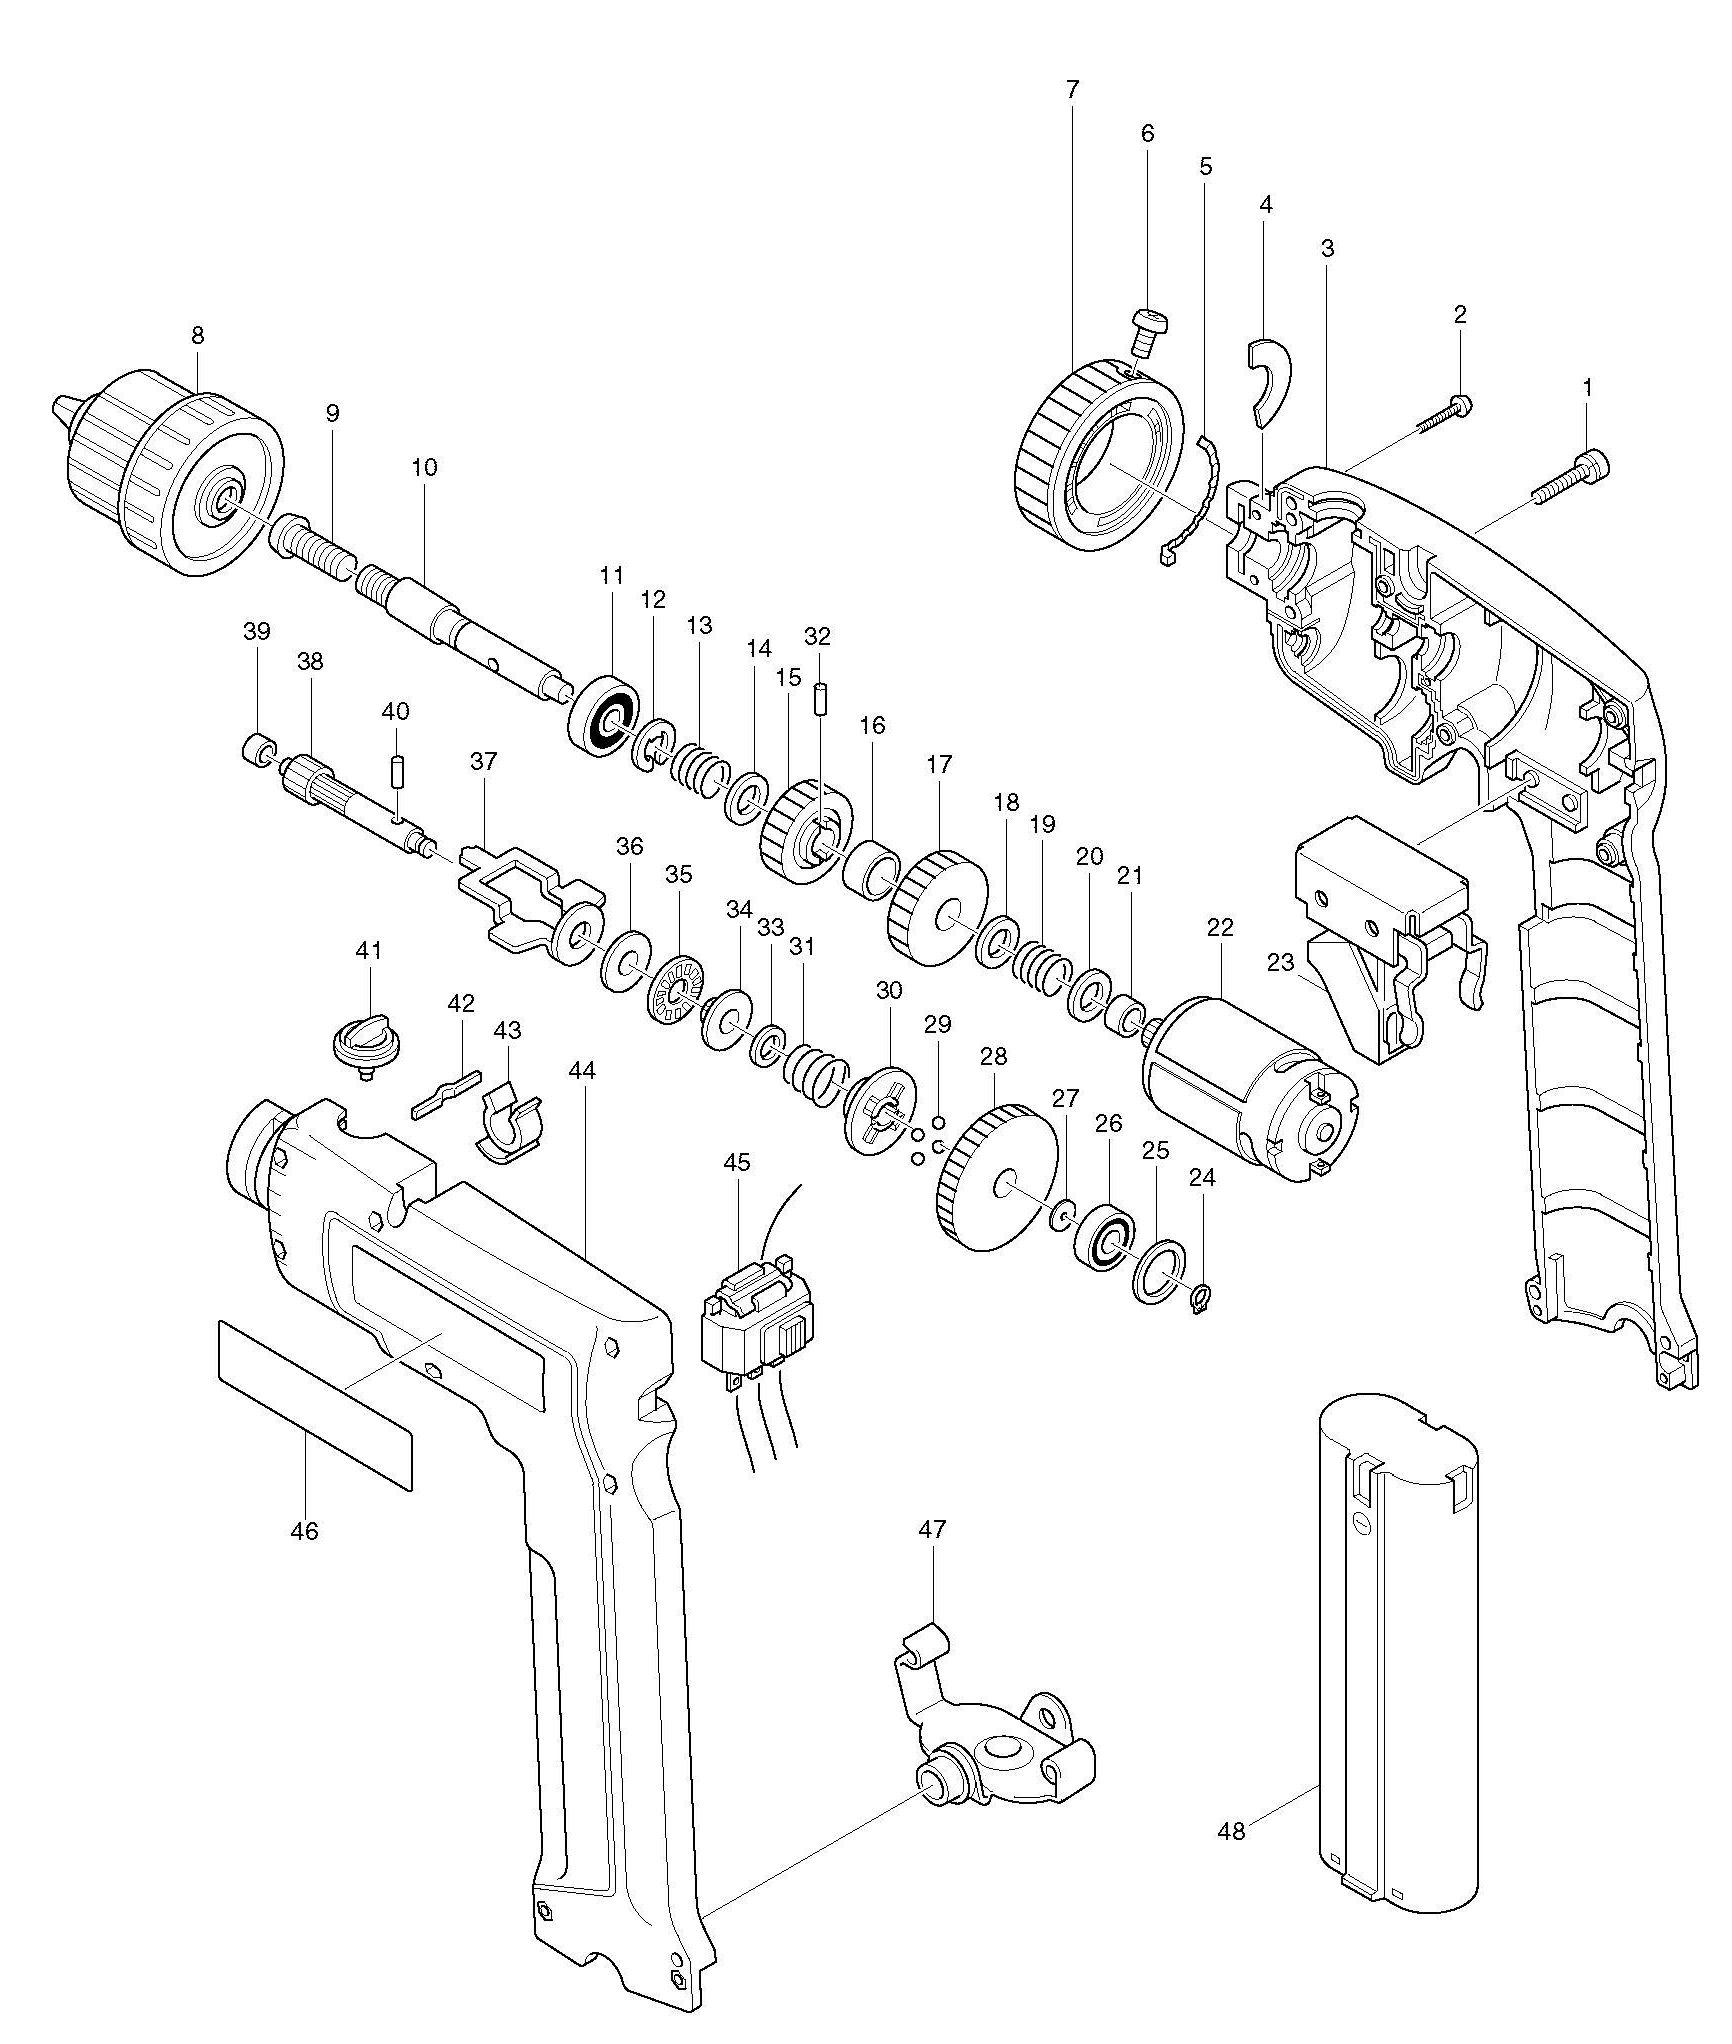 Spares for Makita 6095d Drill/driver SPARE_6095D from